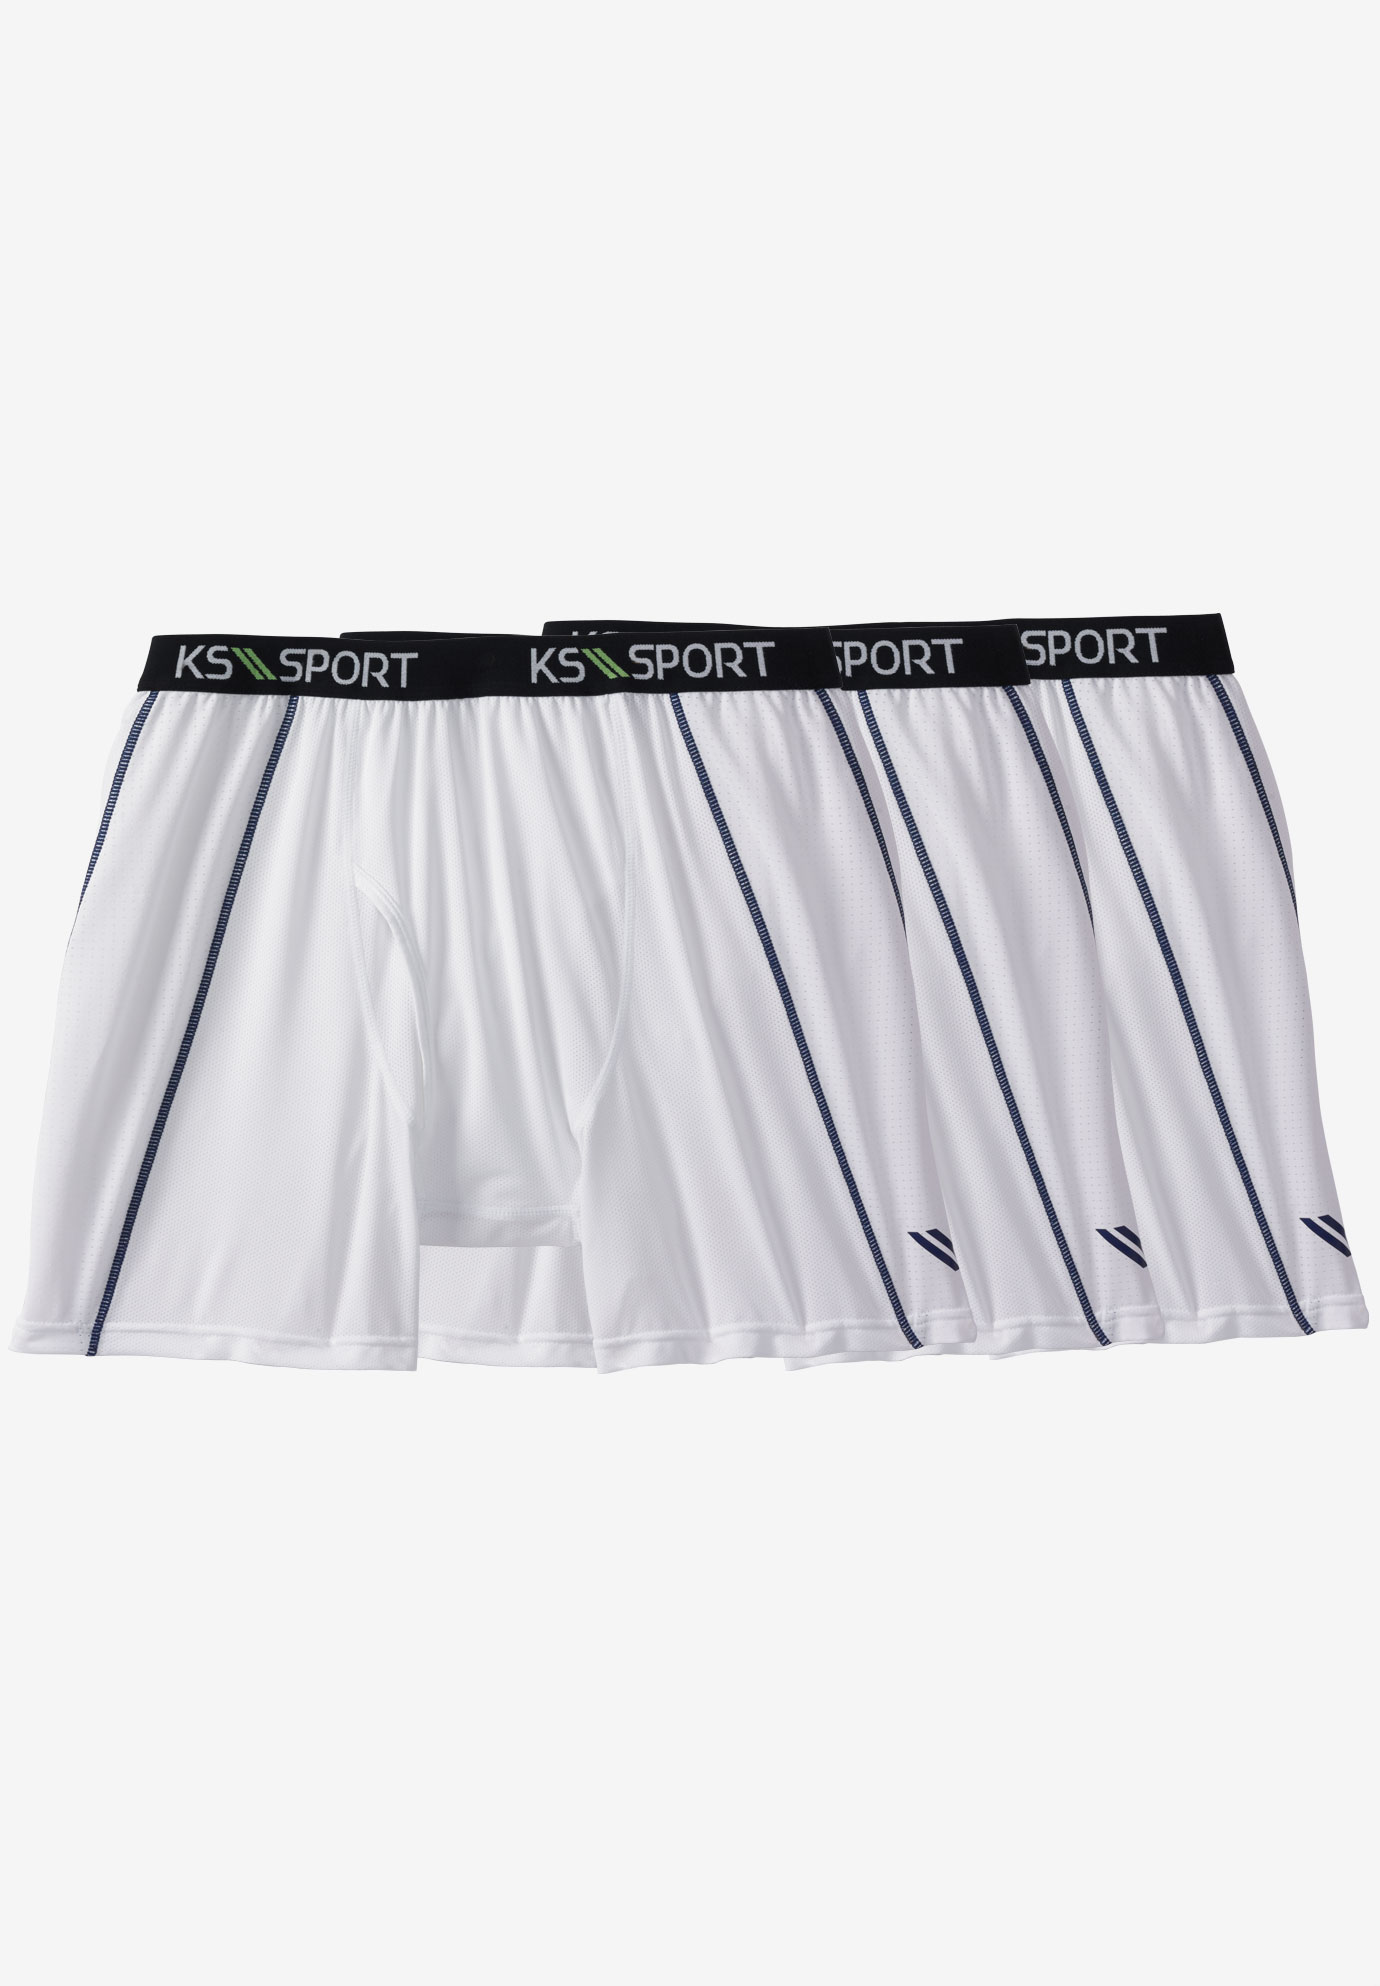 KS Sport™ Performance Cycle Briefs 3-Pack,